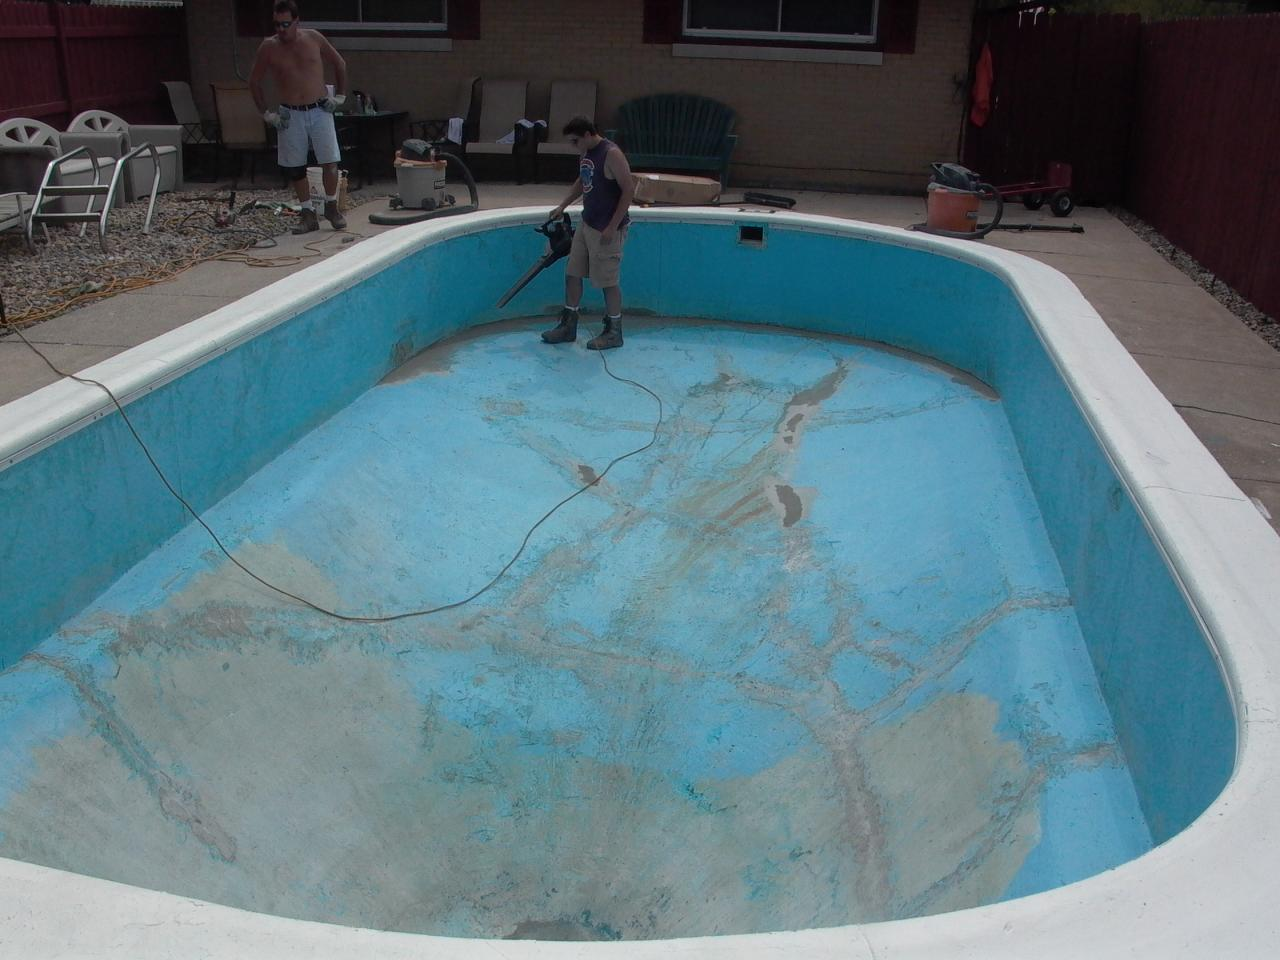 Pools by kure pool renovations for Painting aluminum swimming pool coping